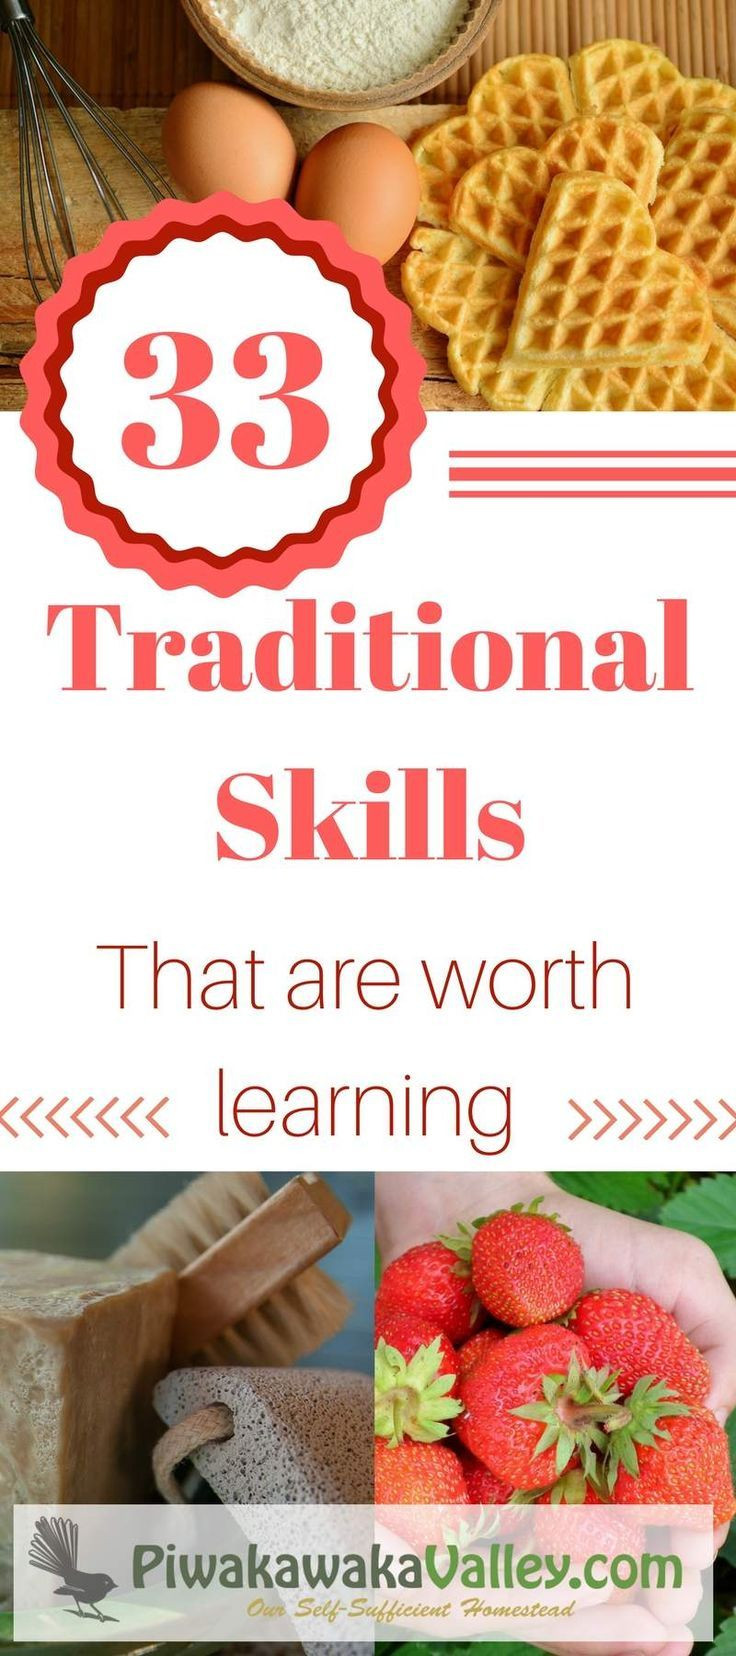 Are you keen to join the uprising of the return to traditional ways of life? These 33 traditional skills will help you on your road to self sufficiency. #homesteading #traditional #selfsufficient